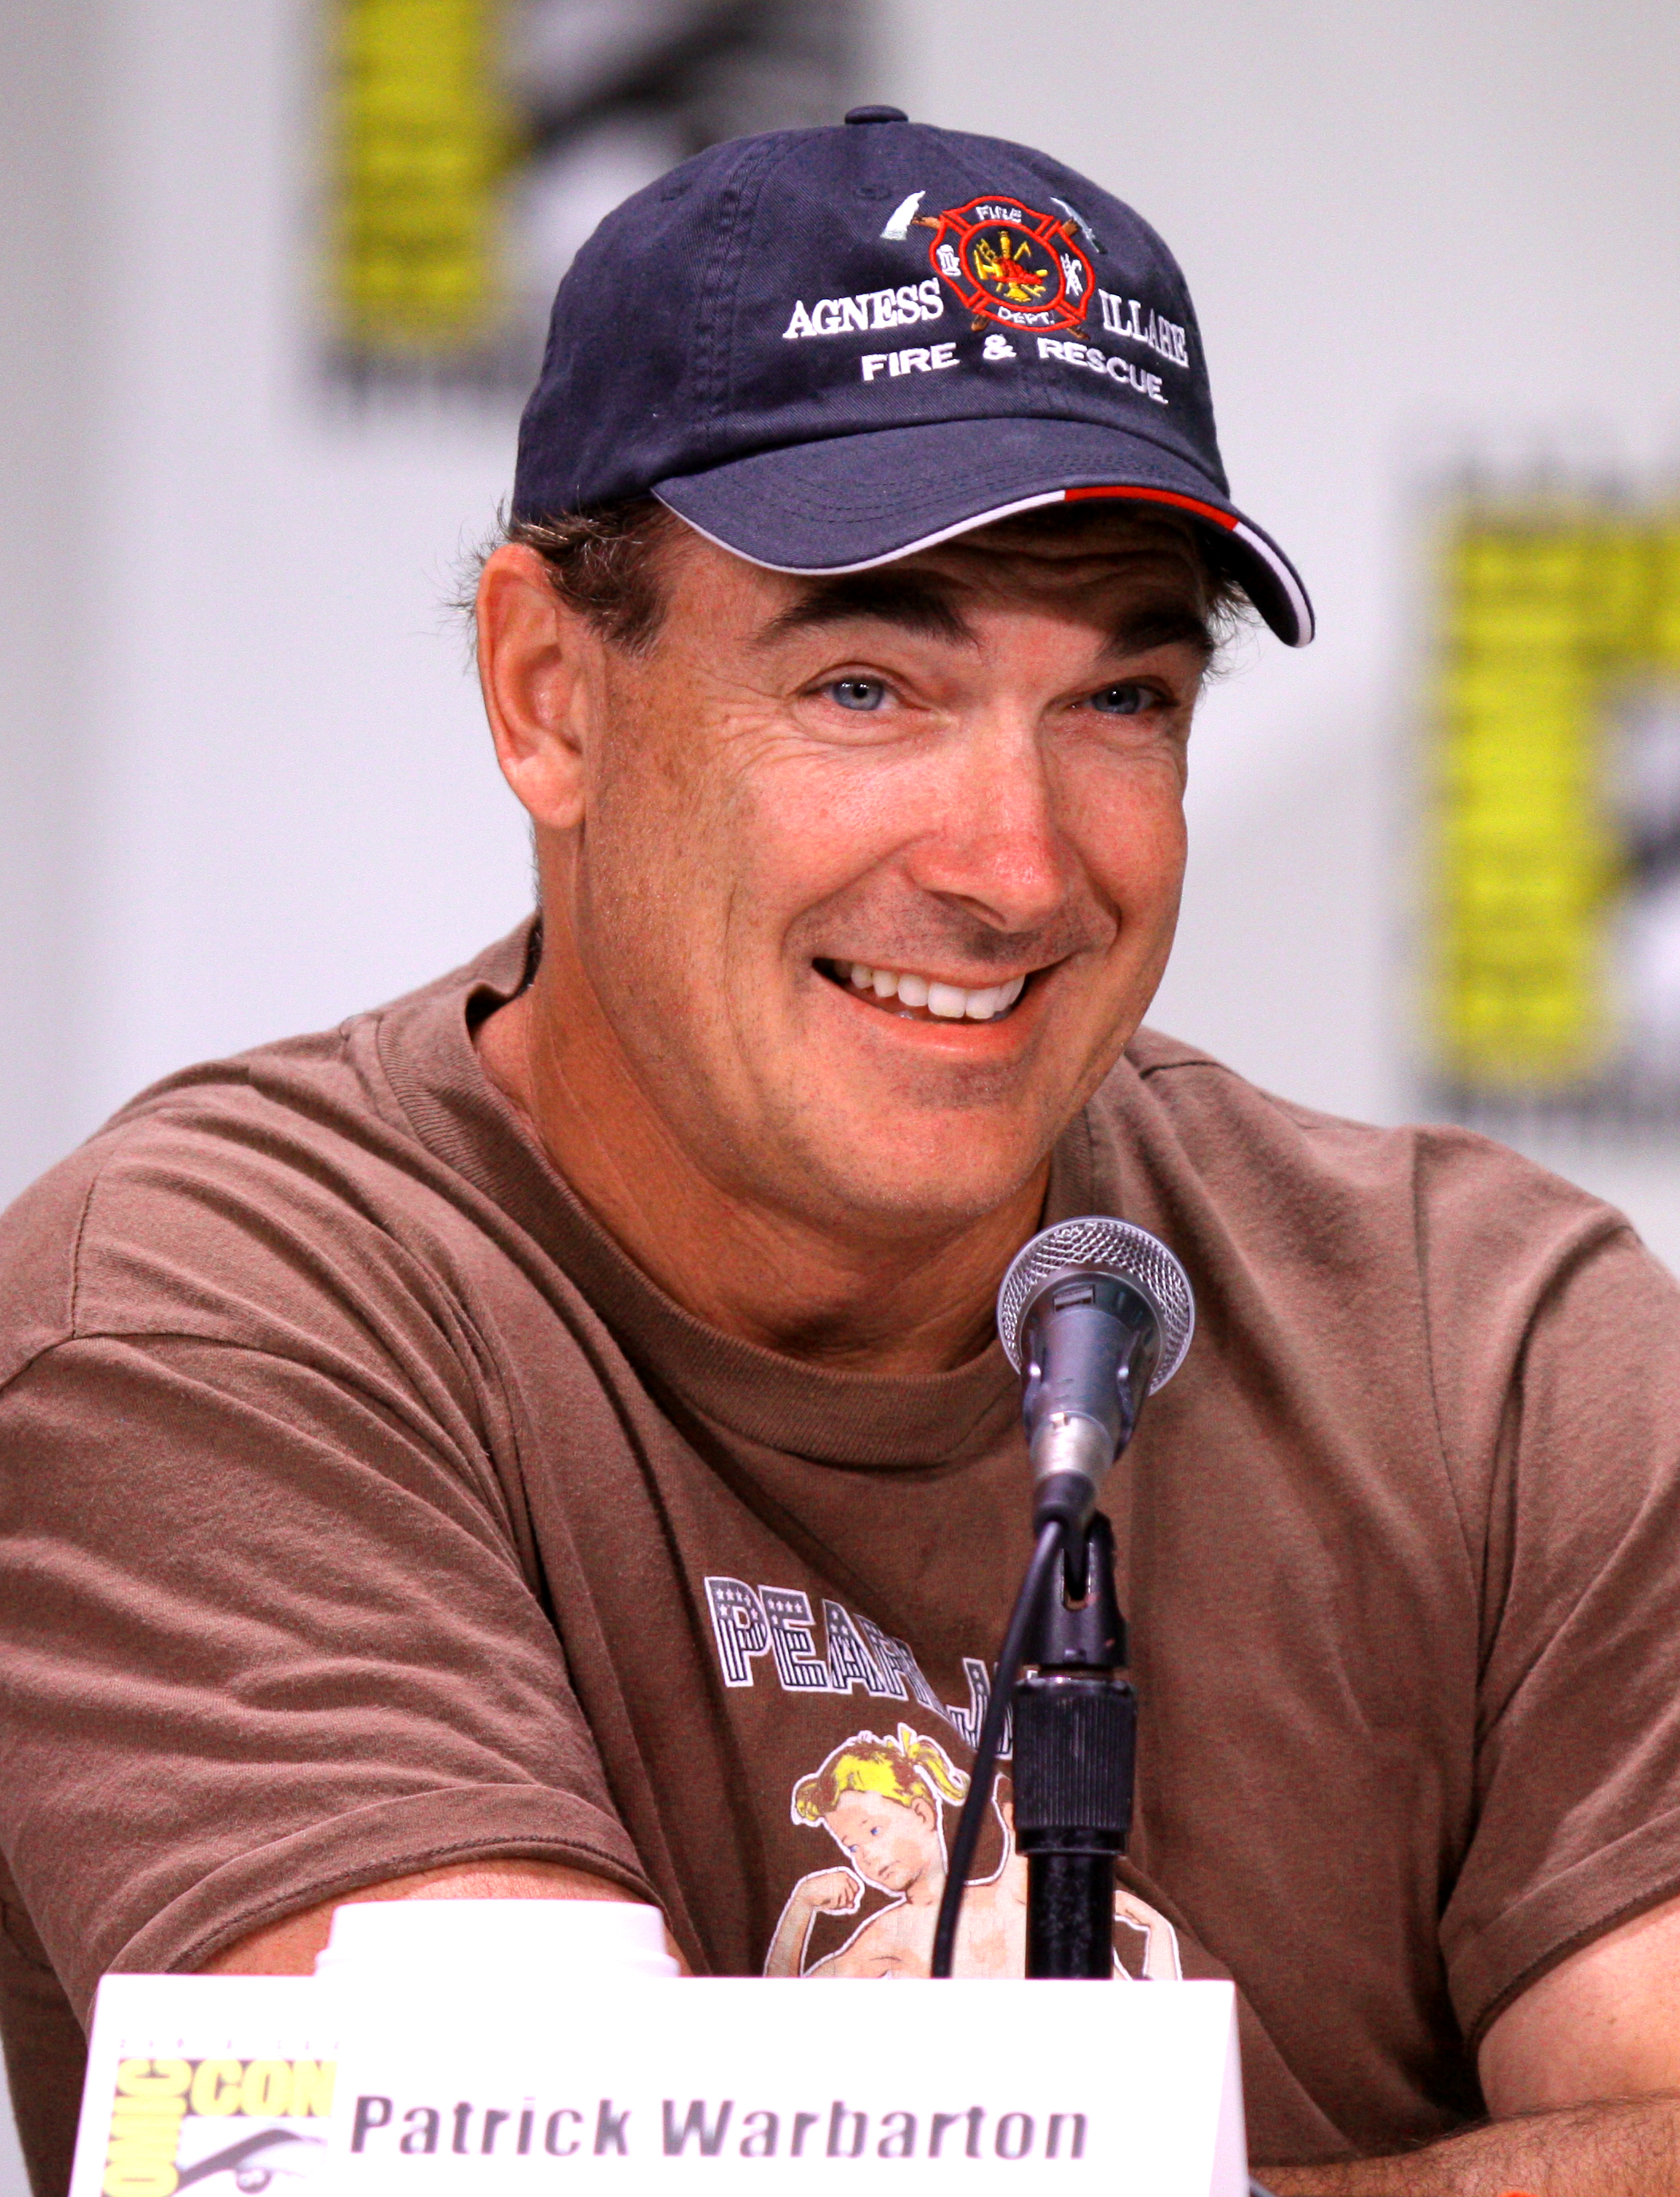 The 56-year old son of father (?) and mother(?) Patrick Warburton in 2021 photo. Patrick Warburton earned a  million dollar salary - leaving the net worth at  million in 2021